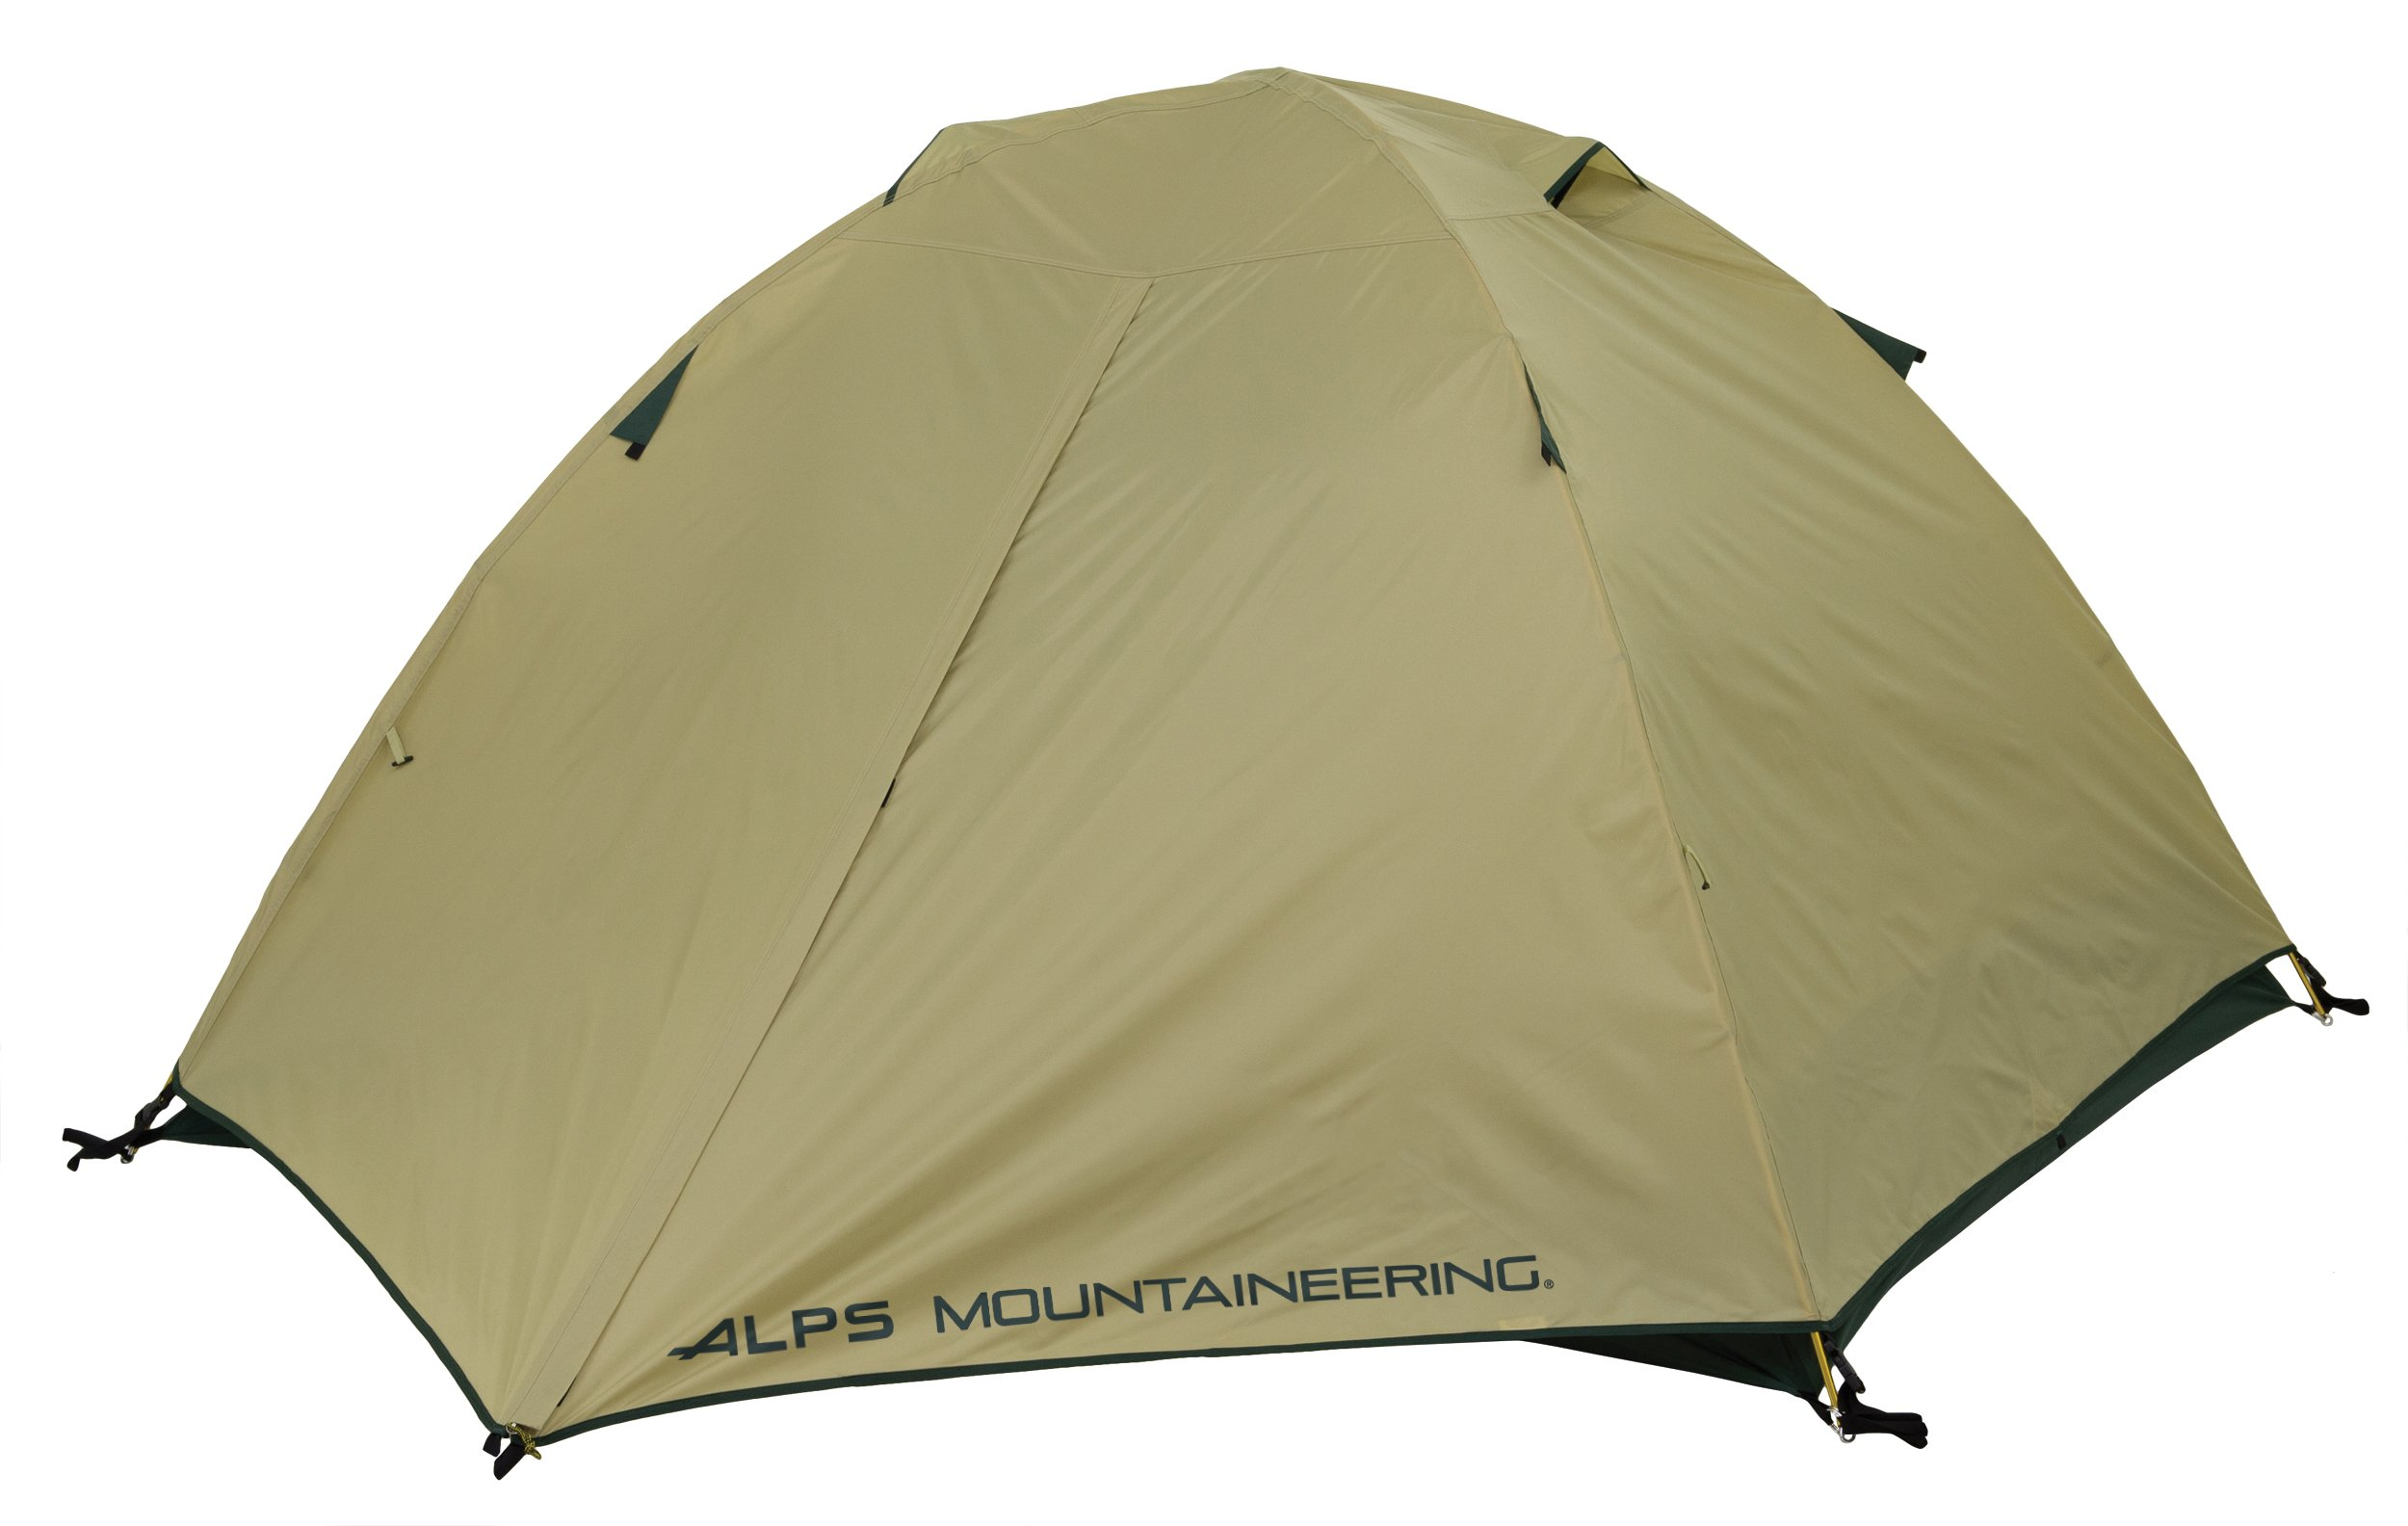 ALPS Mountaineering Taurus 2 Outfitter Tent